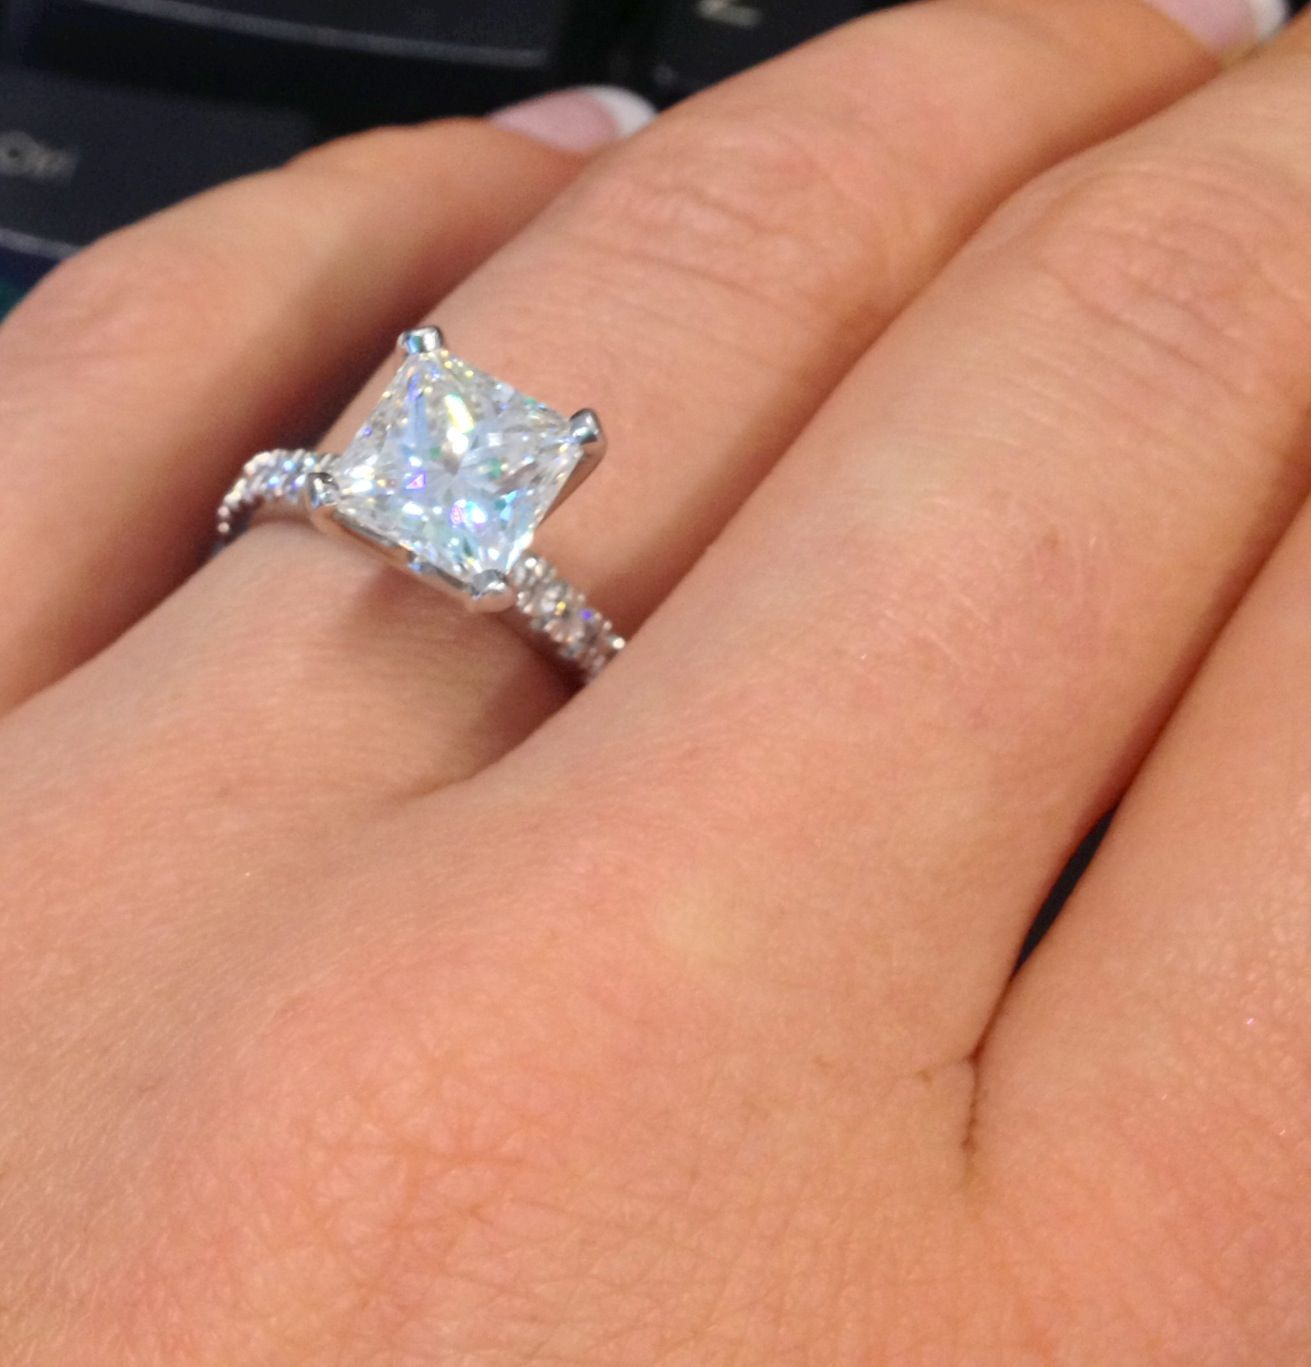 Princess cut engagement ring Sparkly pave style with a pretty